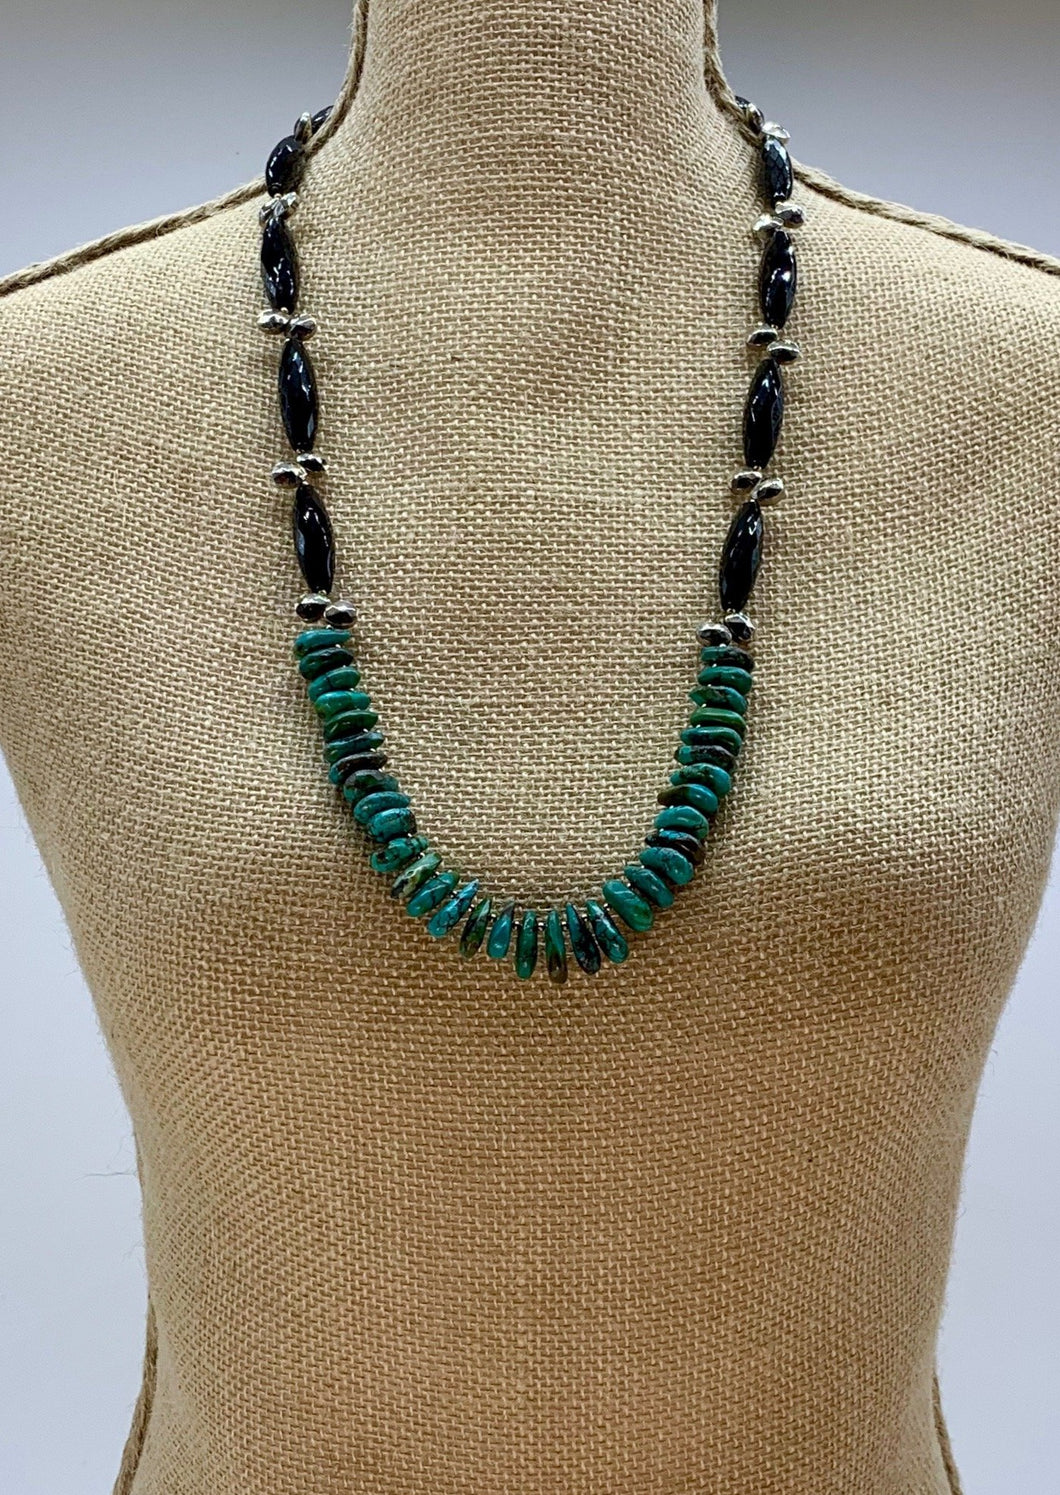 TURQUOISE, ONYX & SILVER PLATED PYRITE NECKLACE -WANTED ONE OF A KIND